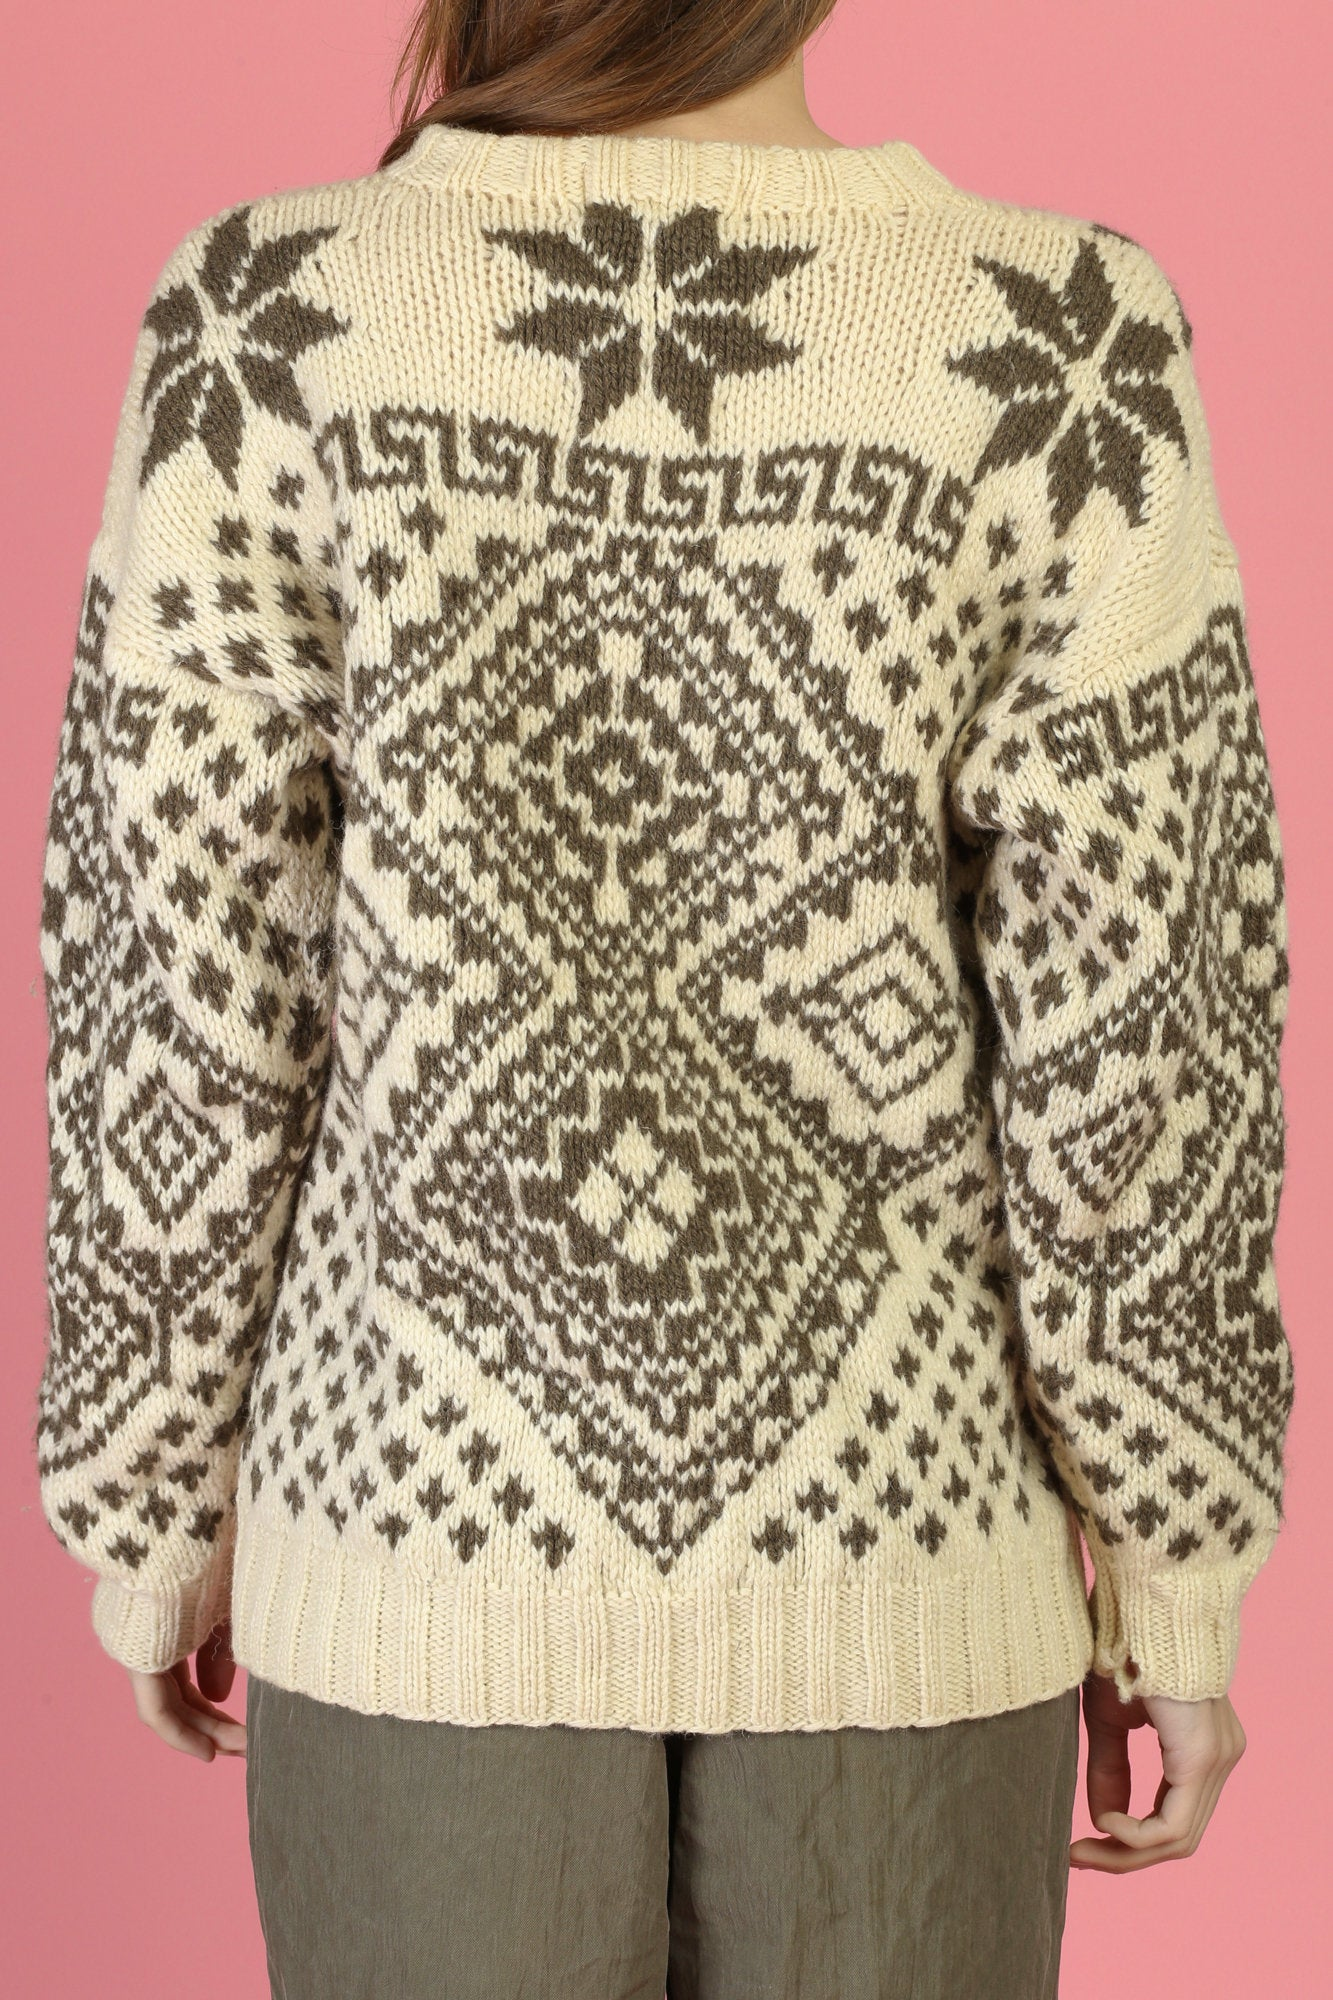 Vintage Hand Knit Cowichan Snowflake Sweater - Medium